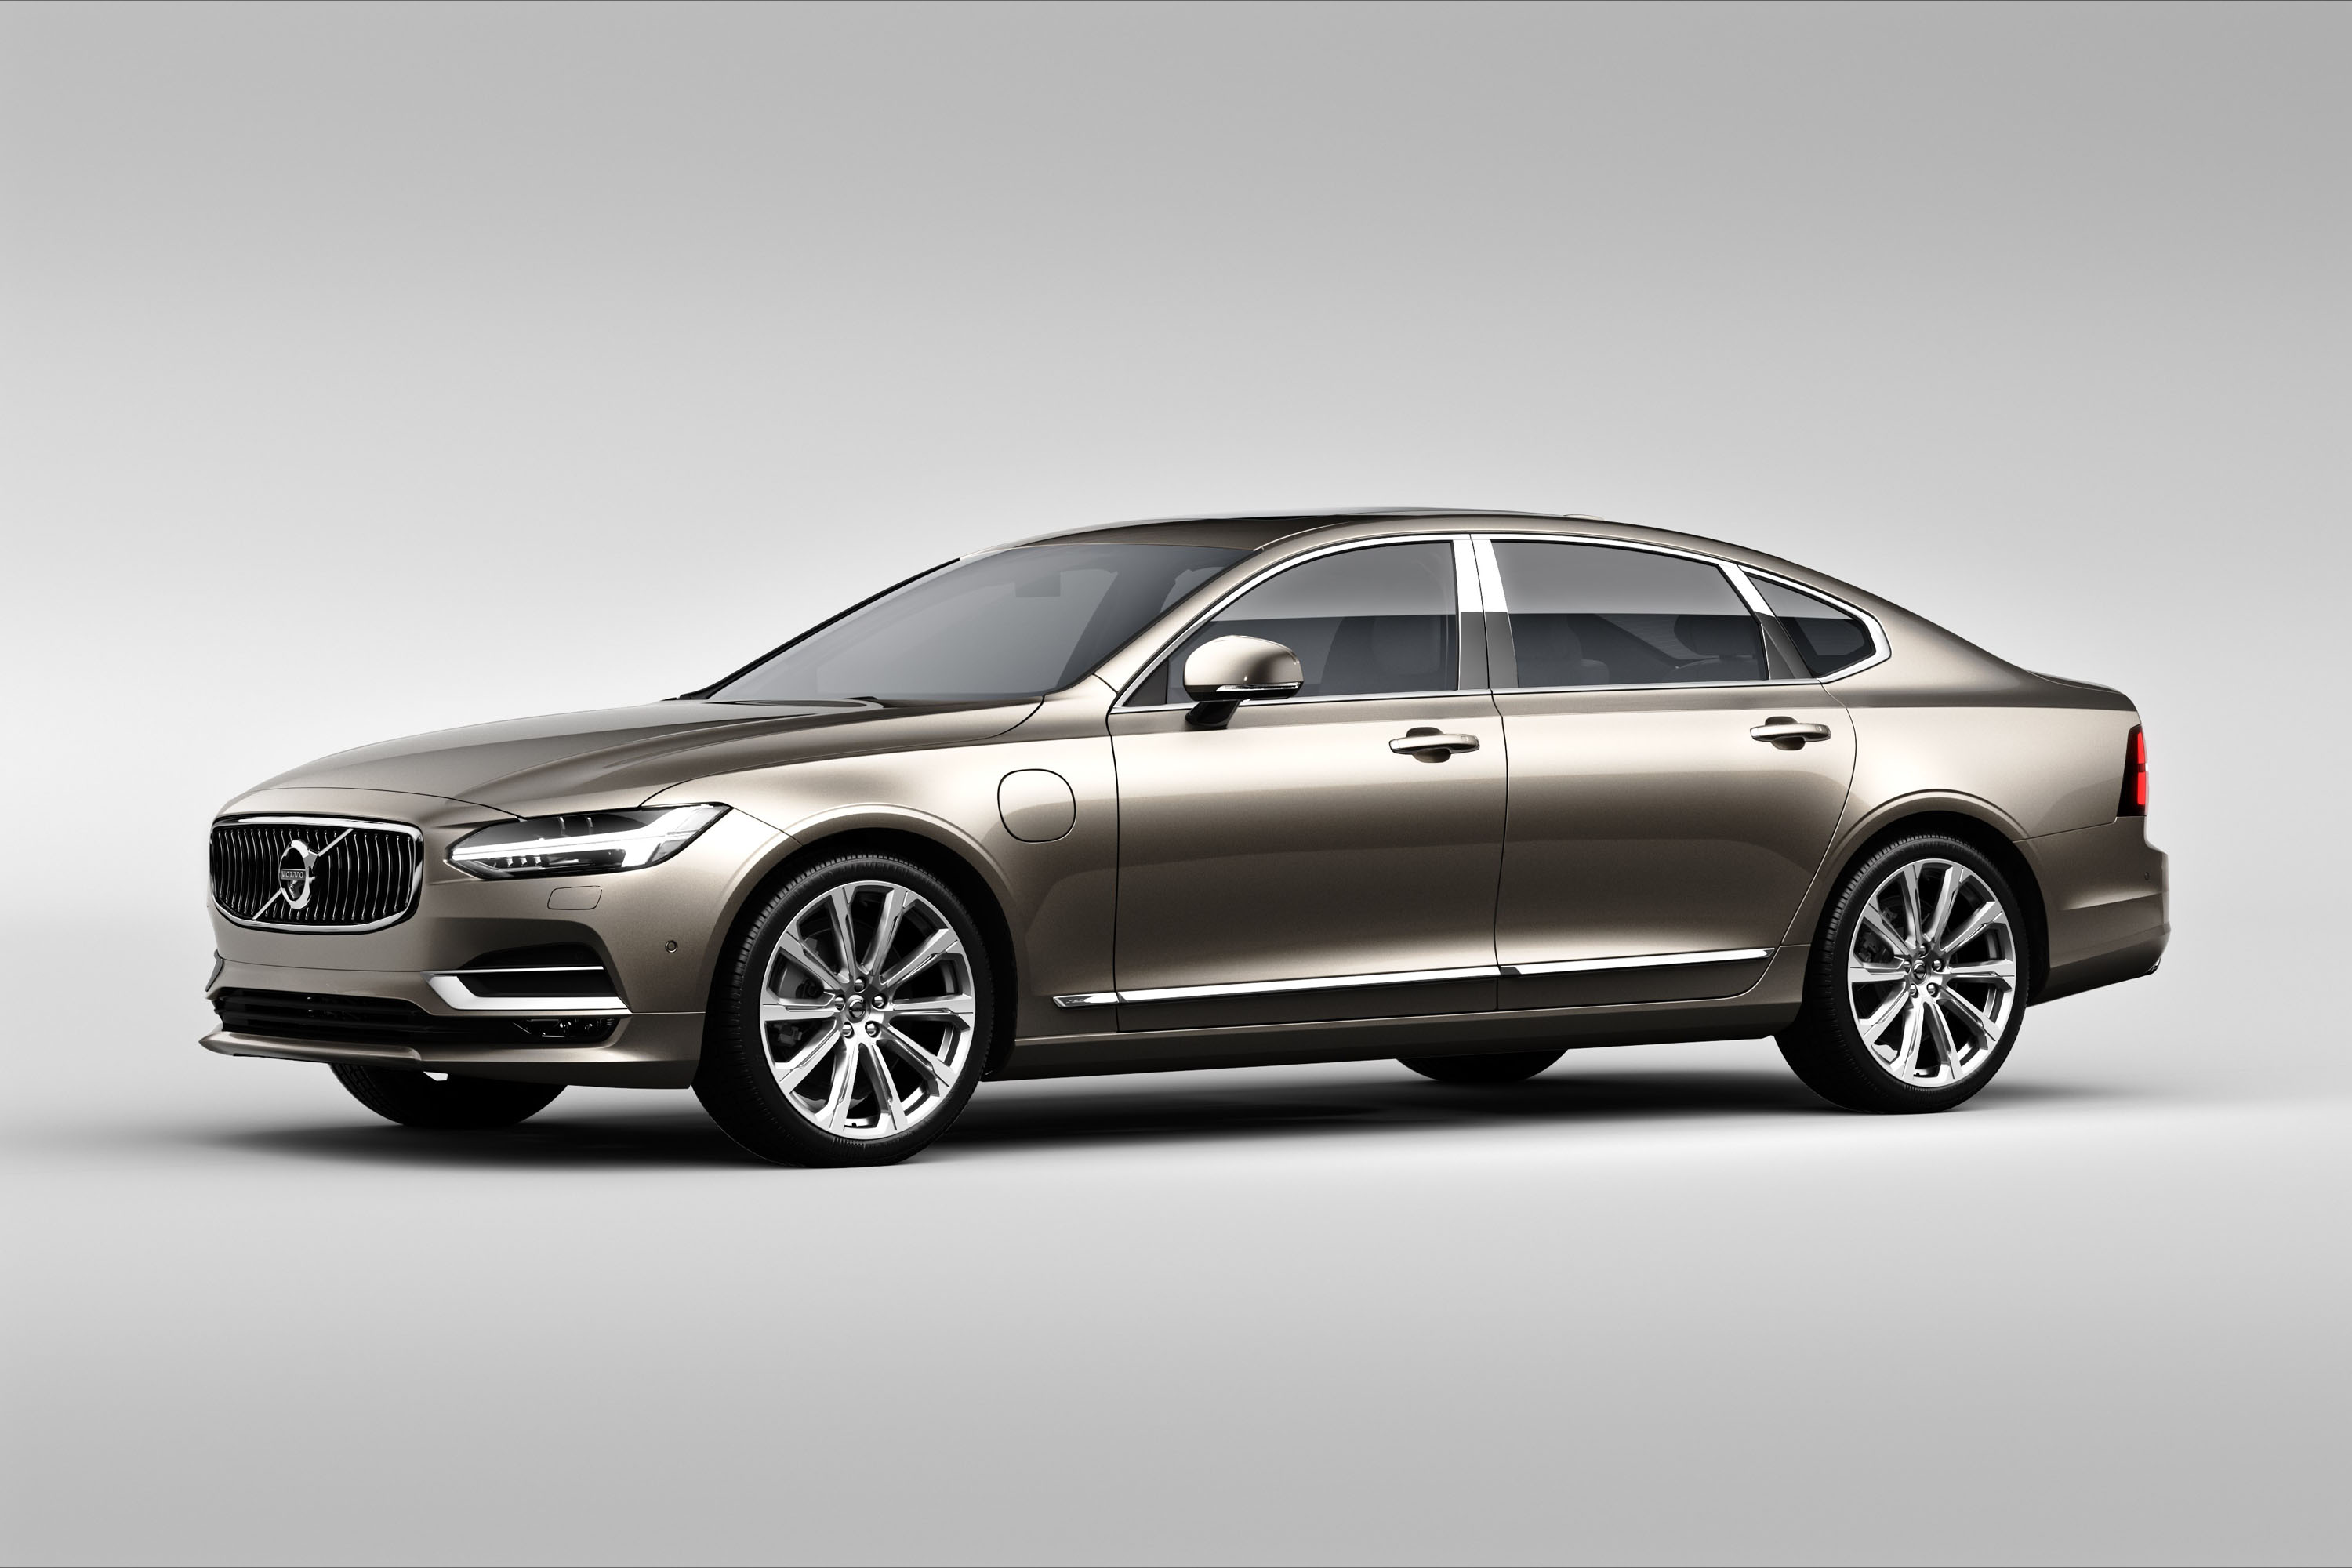 2018 Volvo S90 Review, Ratings, Specs, Prices, and Photos - The Car Connection